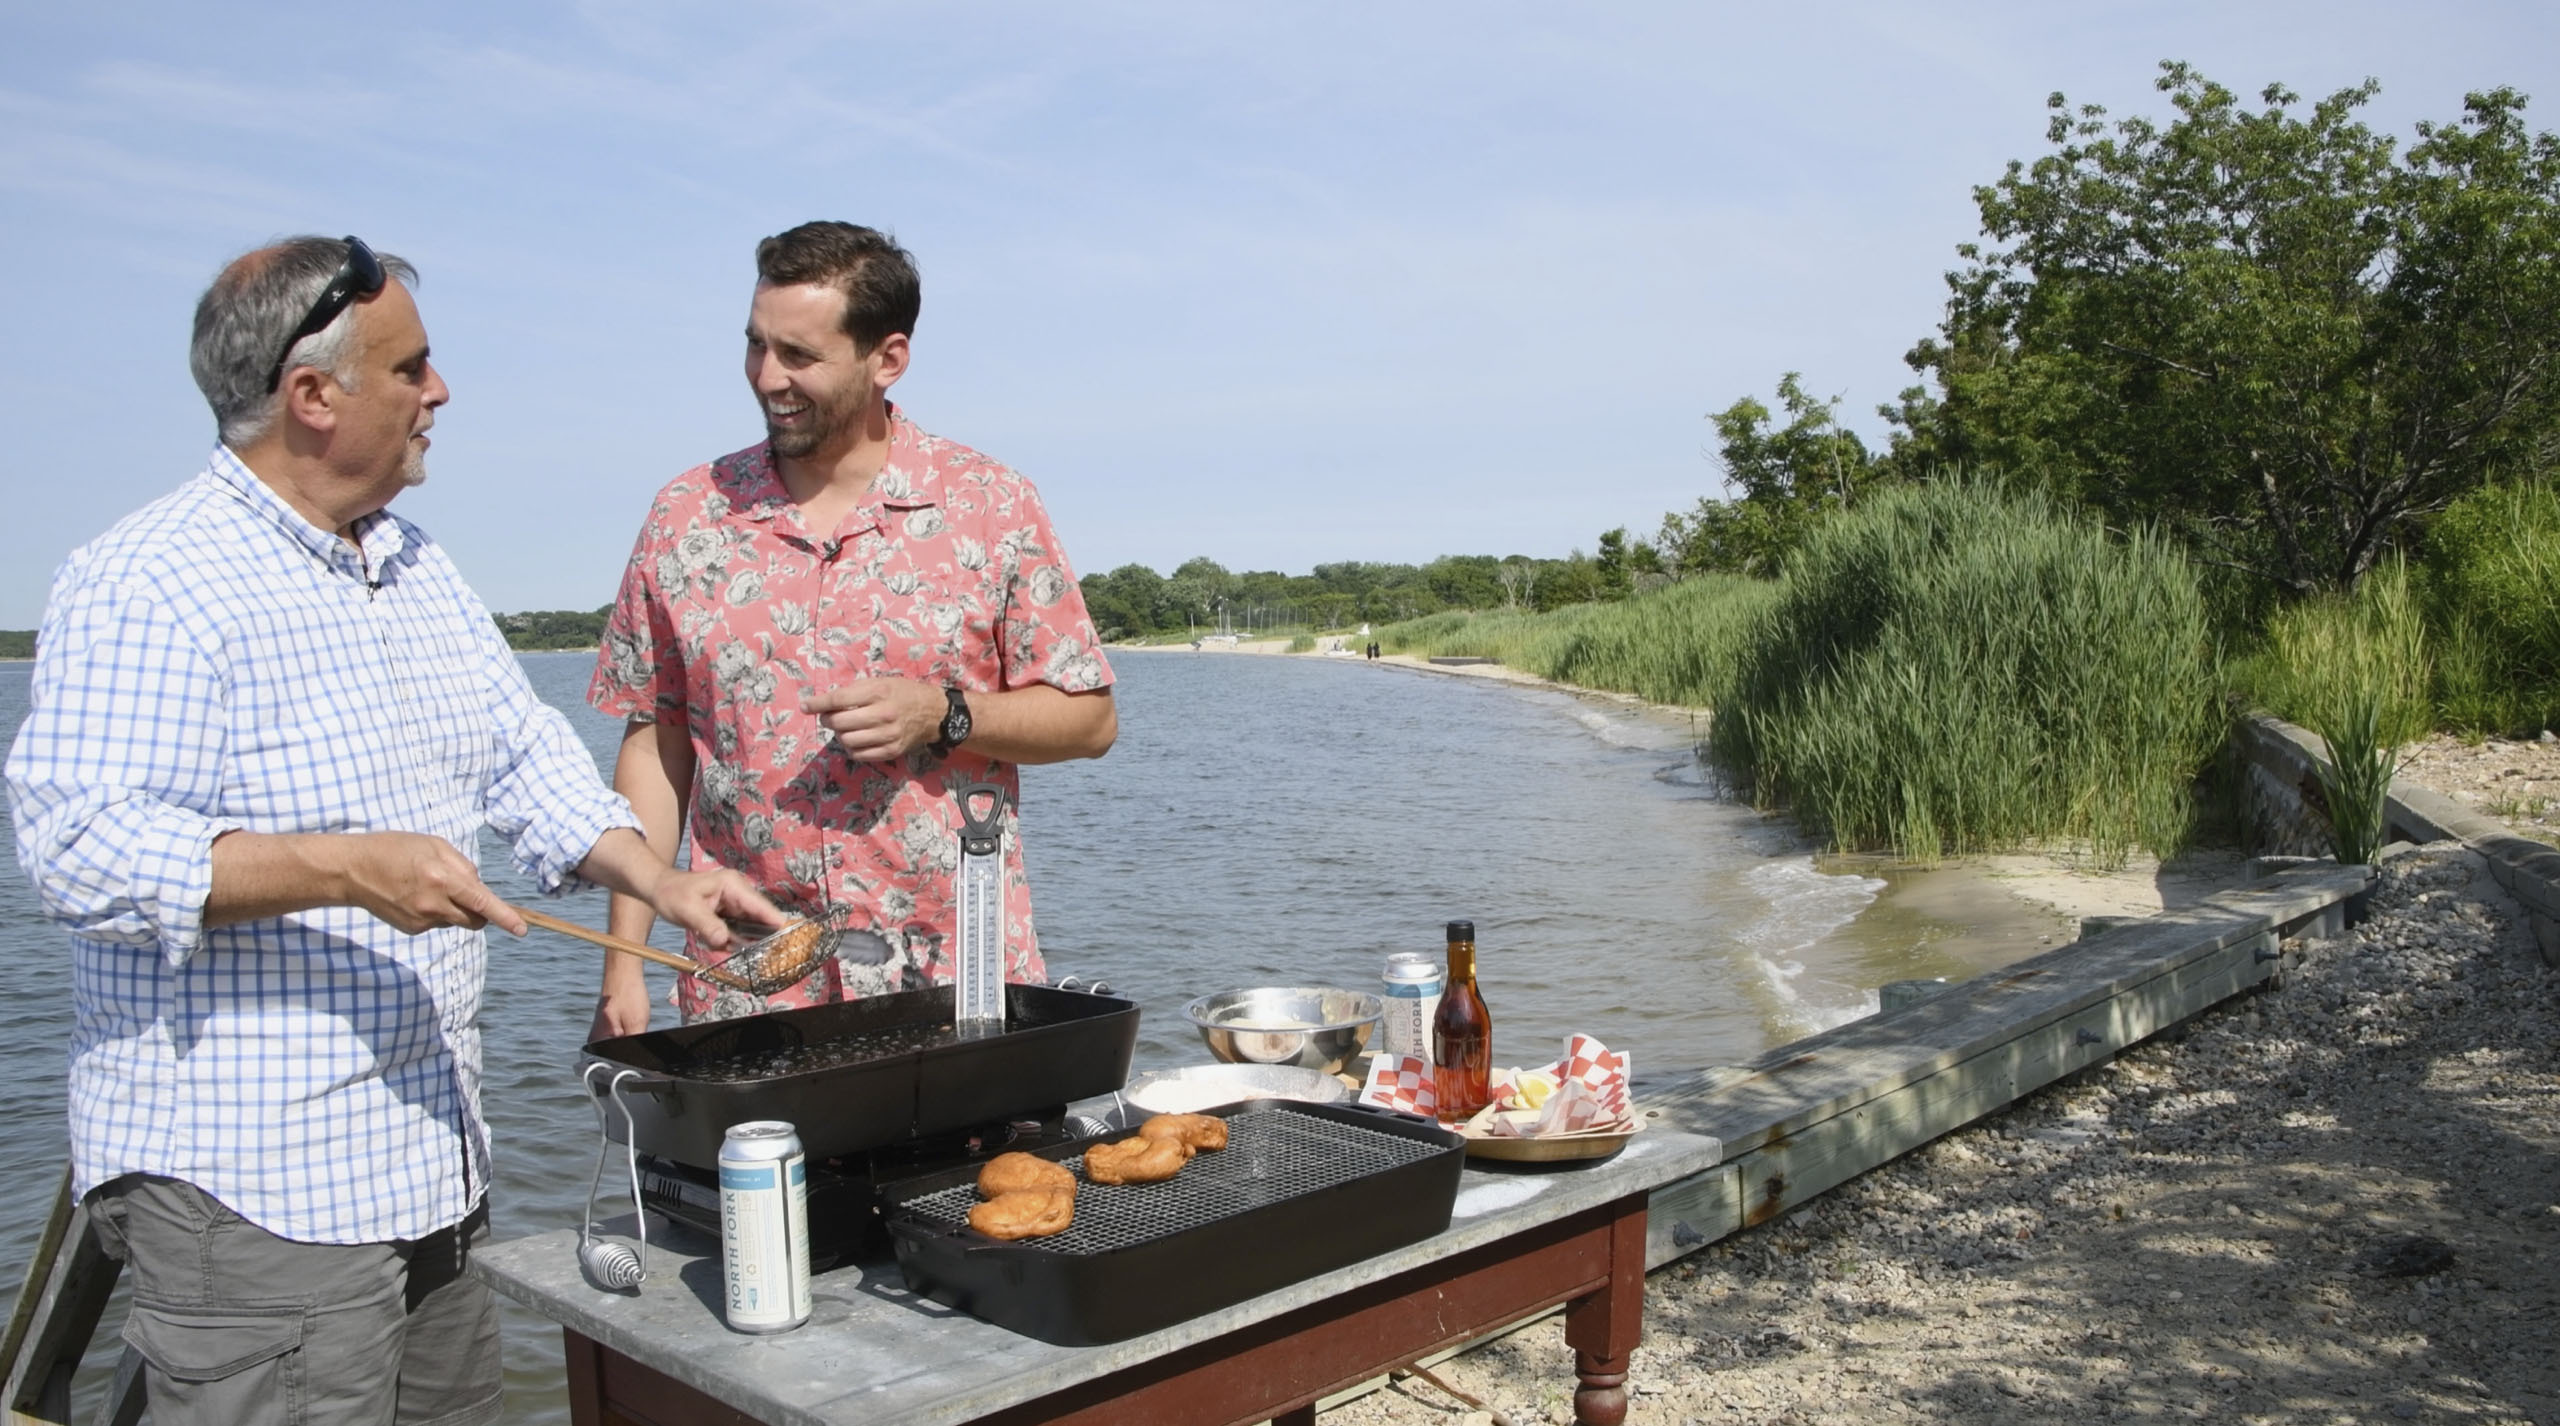 Chef George Hirsch and Alex Goetzfried cooking waterside at Cormaria in Sag Harbor.